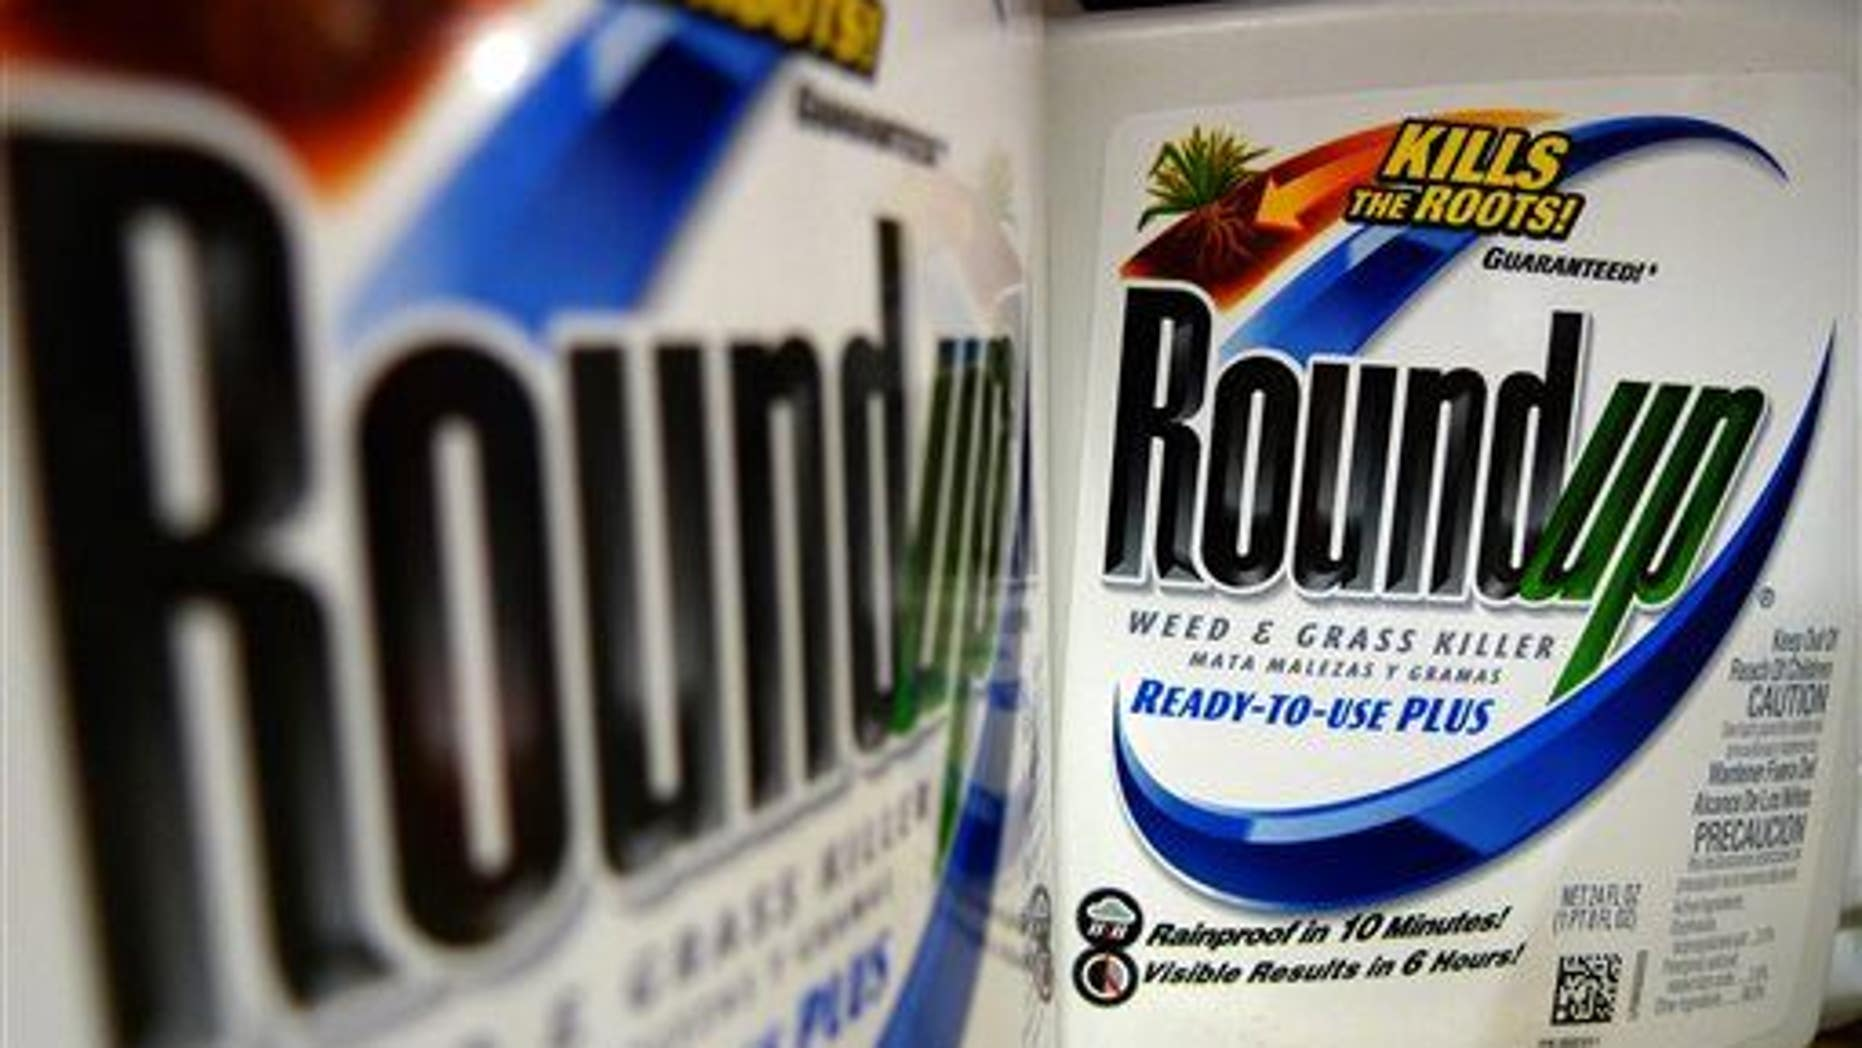 This June 28, 2011, file photo shows bottles of Roundup herbicide, a product of Monsanto, on a store shelf in St. Louis.